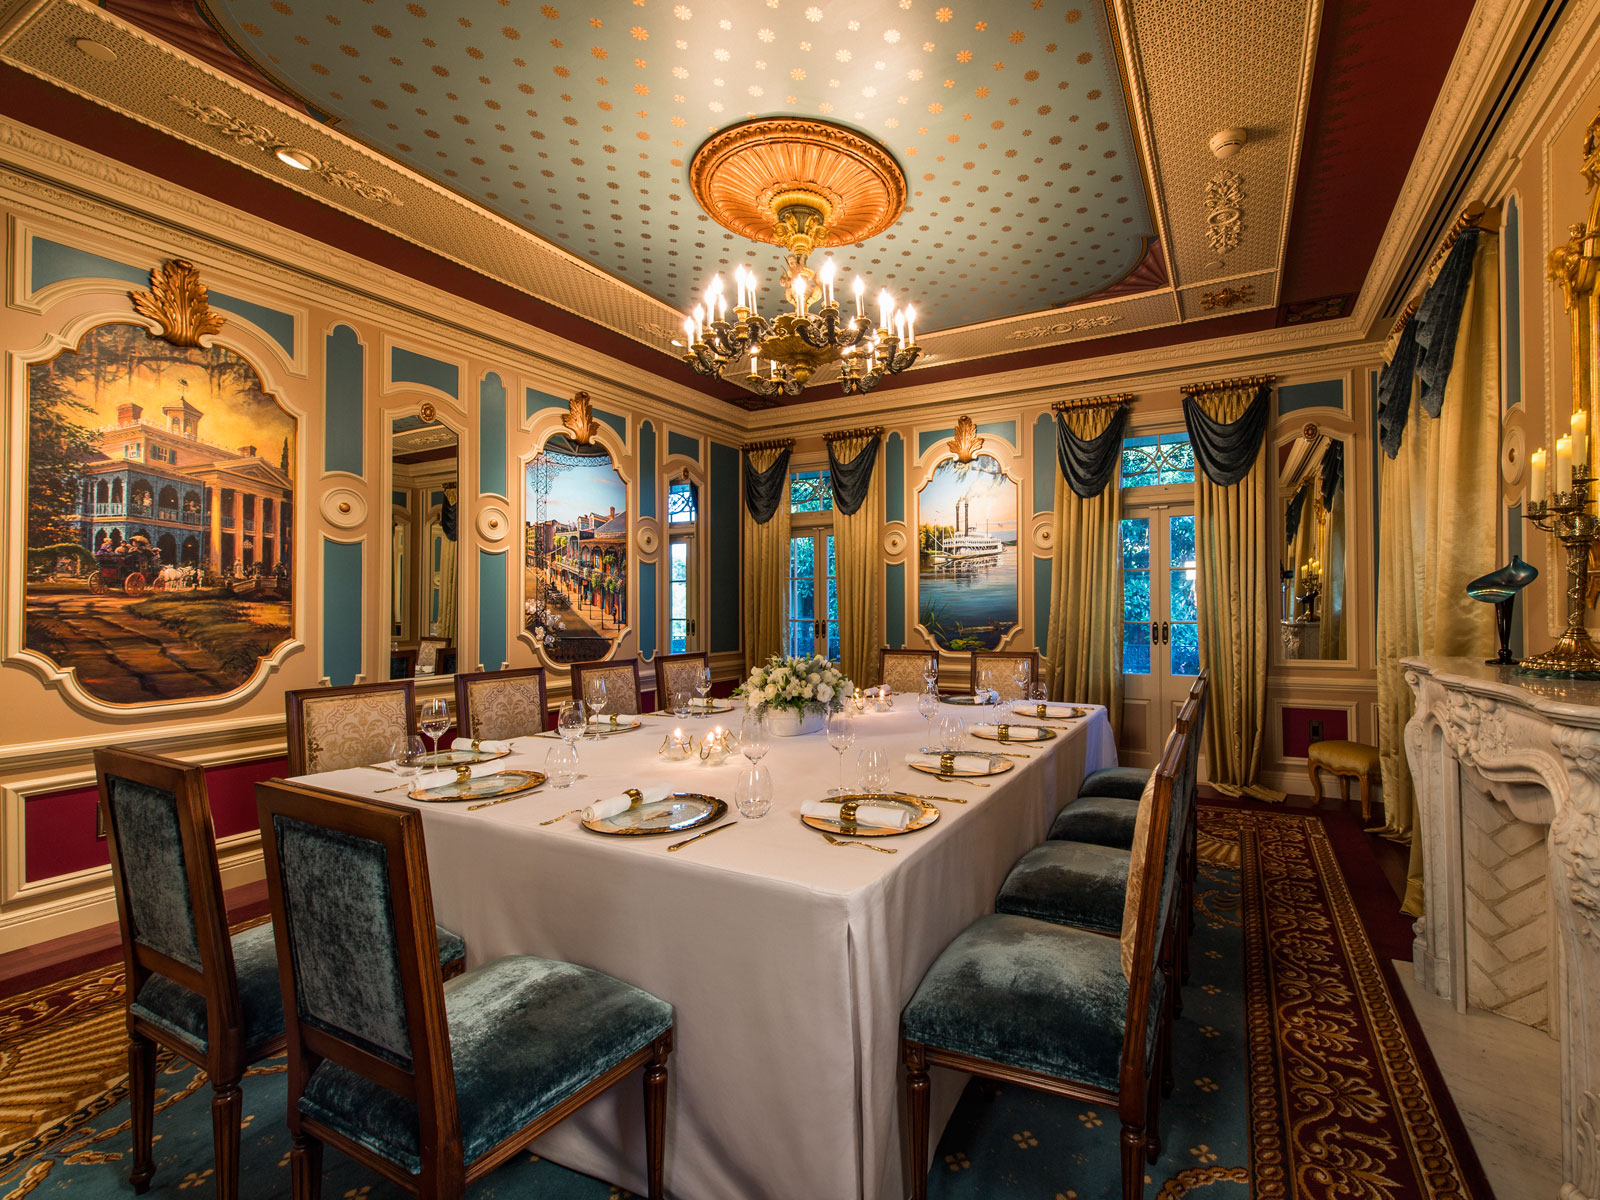 Disneyland's $15,000 Private Dining Experience Is Insane and Magical